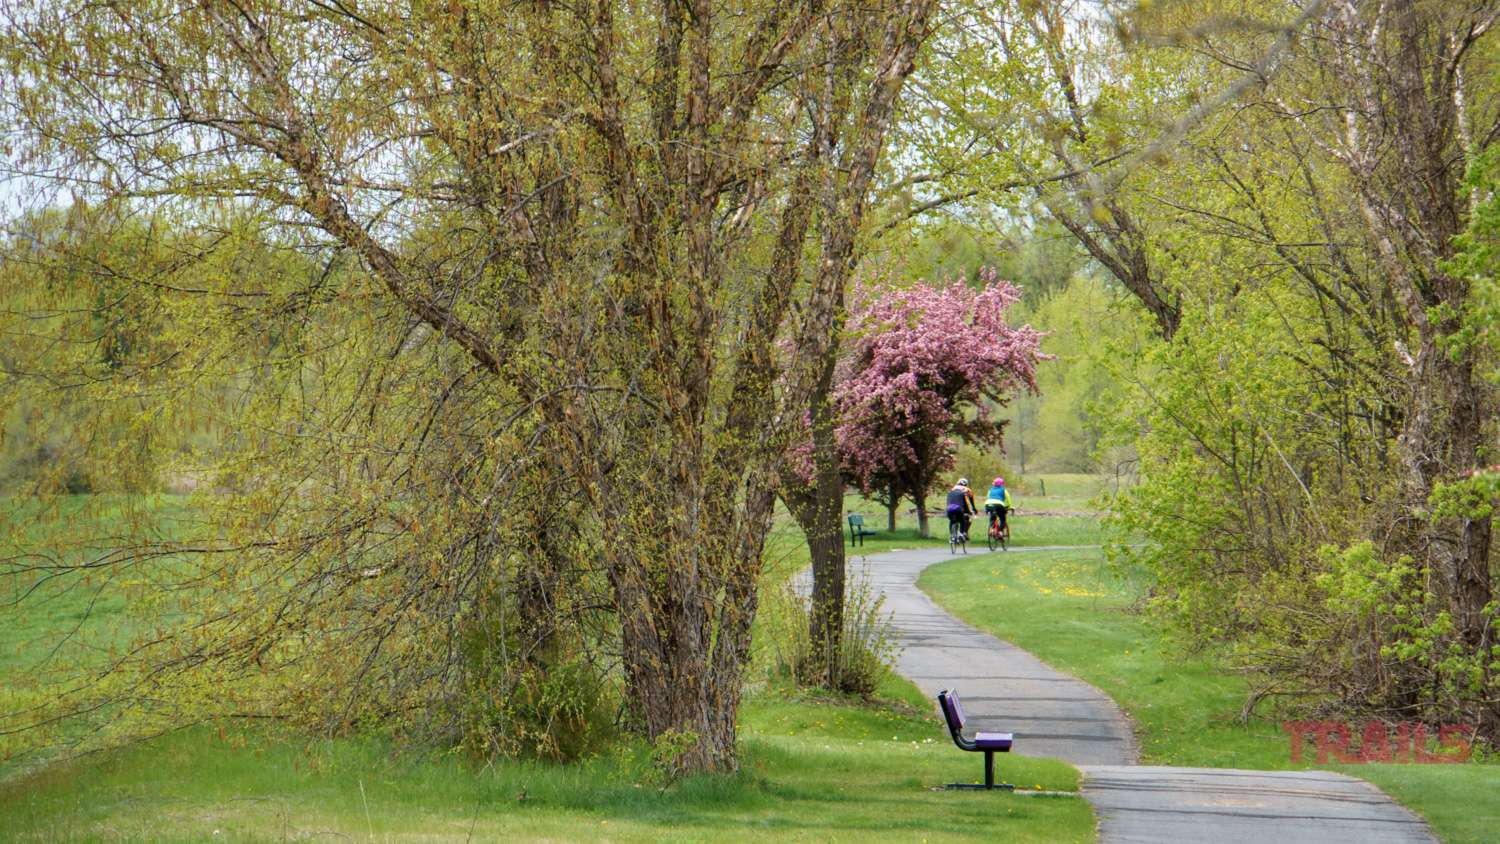 Three people on bikes ride through a park with flowering trees in the spring